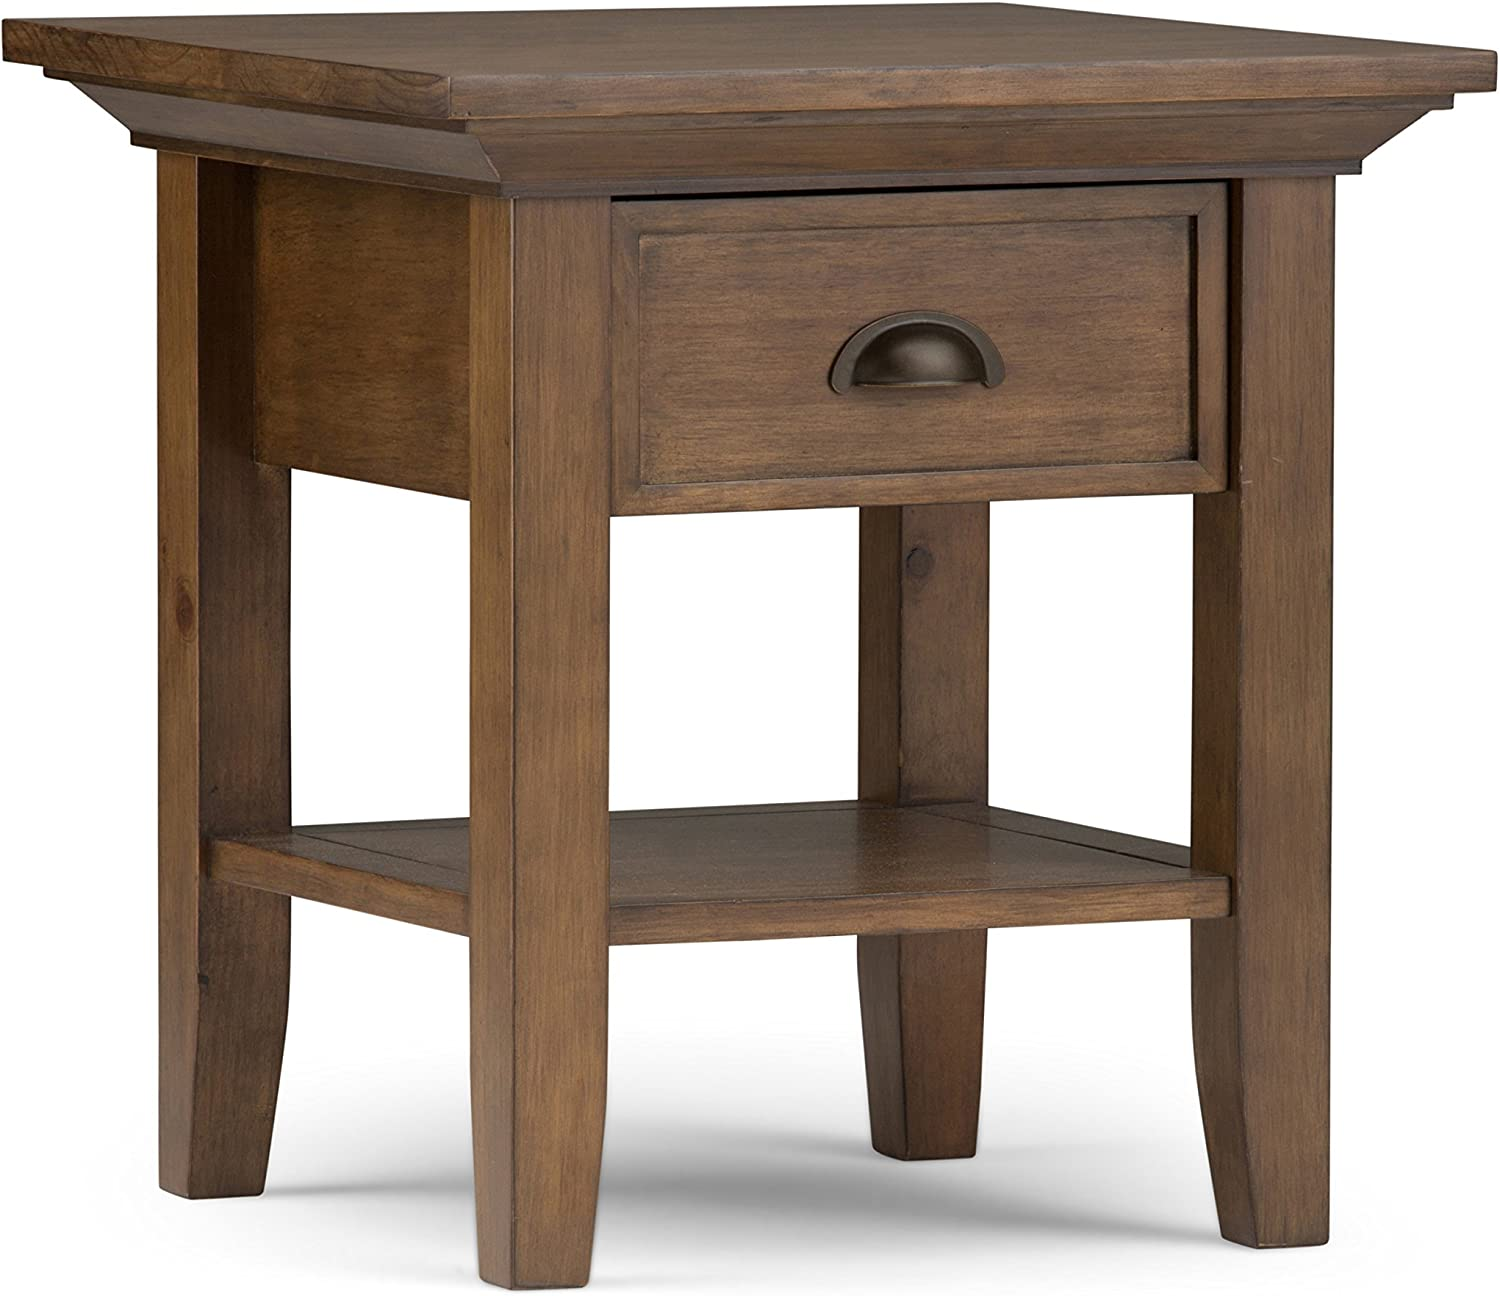 SIMPLIHOME Redmond SOLID WOOD 19 inch wide Square Rustic Contemporary End Side Table in Rustic Contemporary Natural Aged Brown with Storage, 1 Drawer and 1 Shelf, for the Living Room and Bedroom